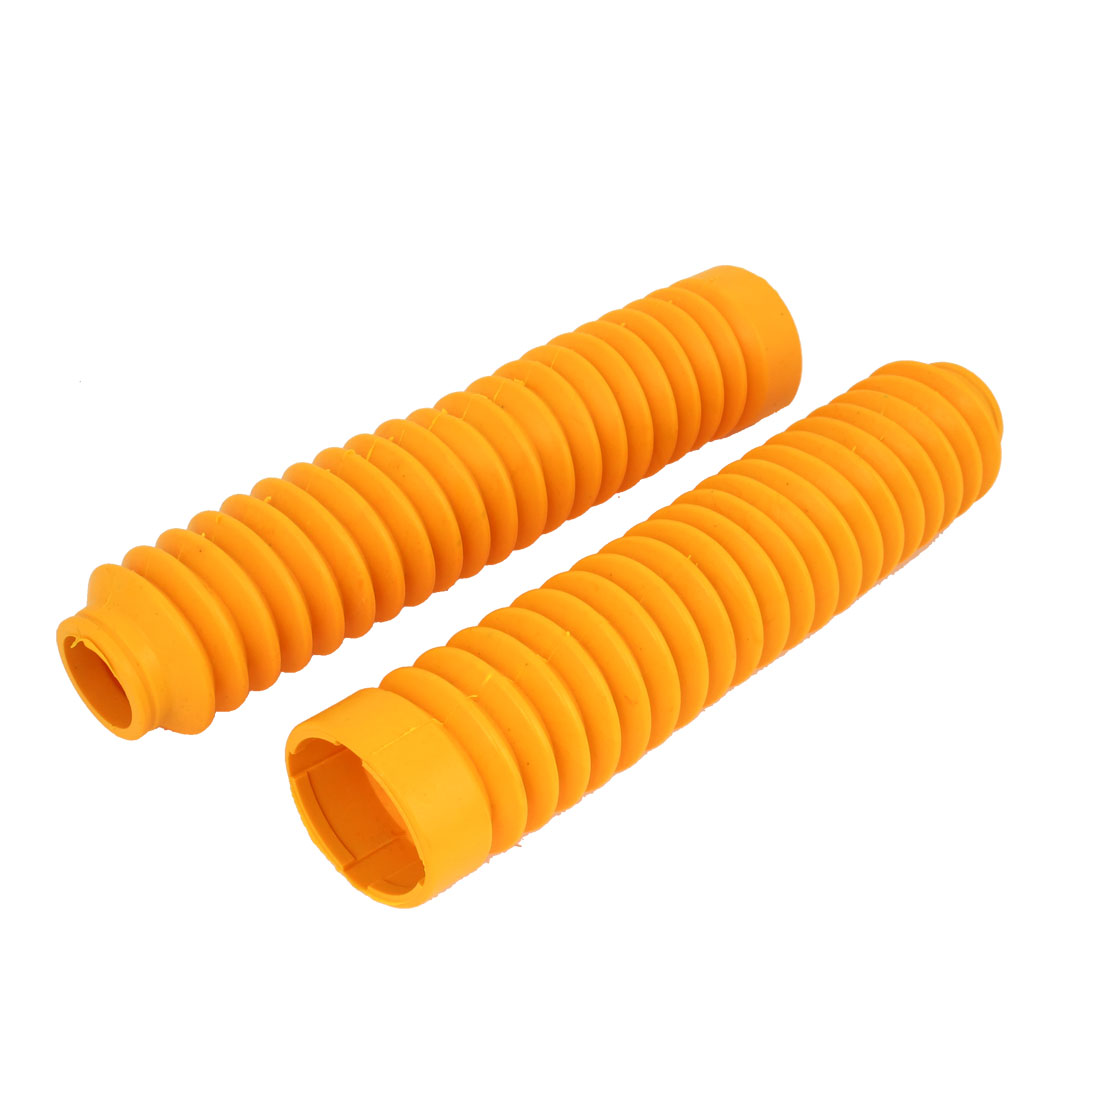 Pair 26cm Long Front Fork Cover Shock Absorber Dust Rubber Cover Yellow